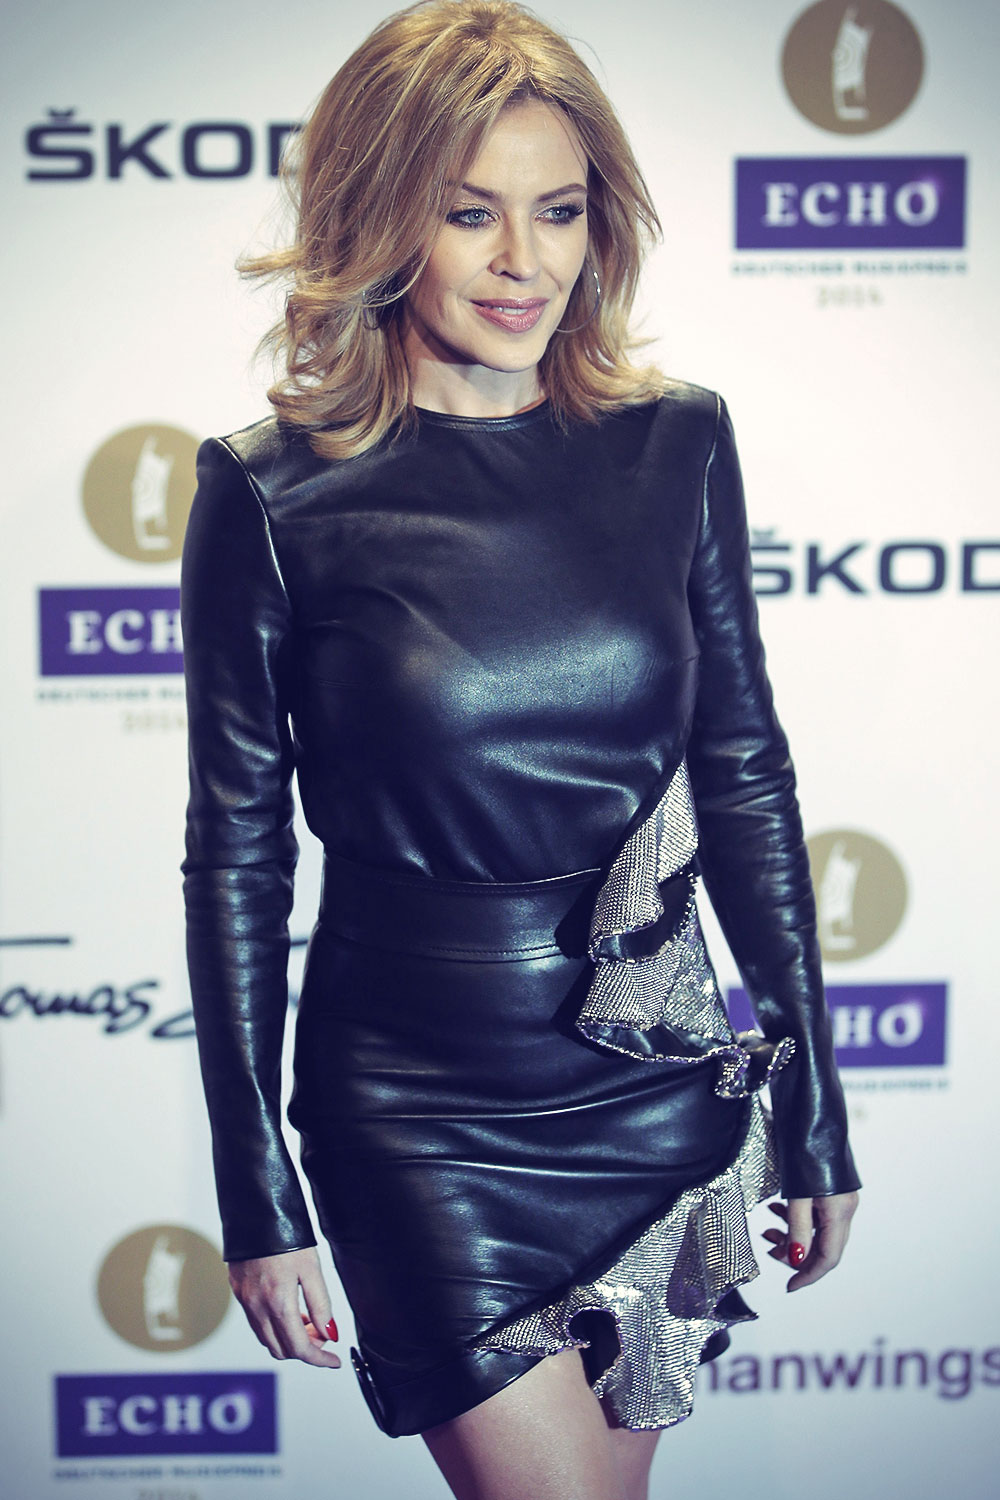 Kylie Minogue attends Echo 2014 music awards